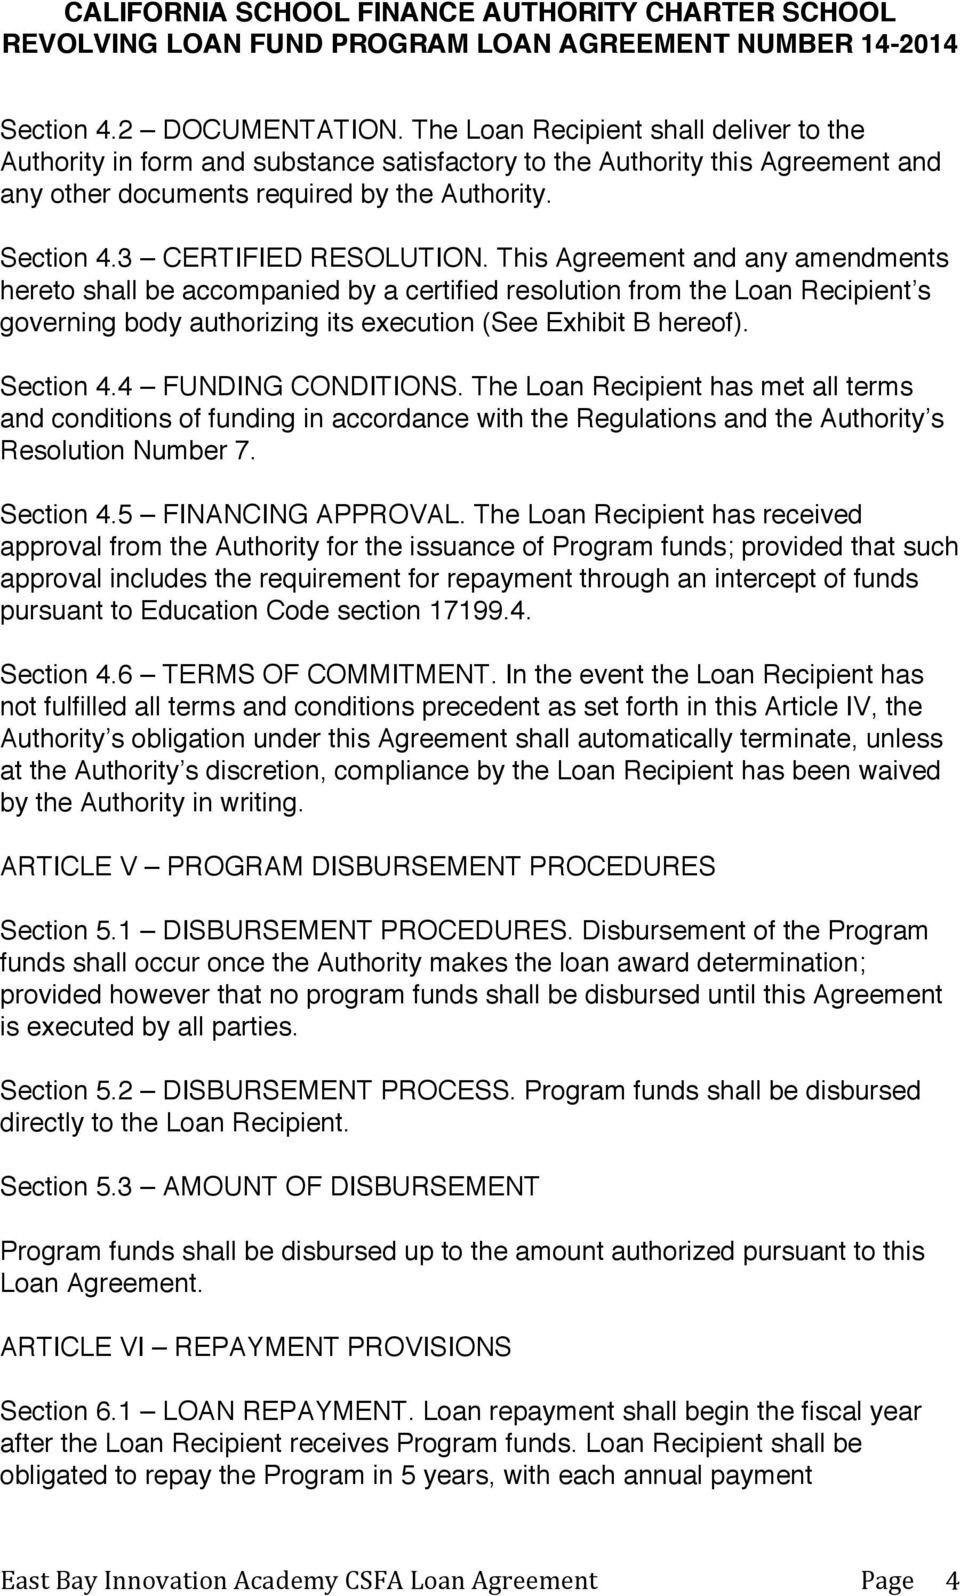 This Agreement and any amendments hereto shall be accompanied by a certified resolution from the Loan Recipient s governing body authorizing its execution (See Exhibit B hereof). Section 4.